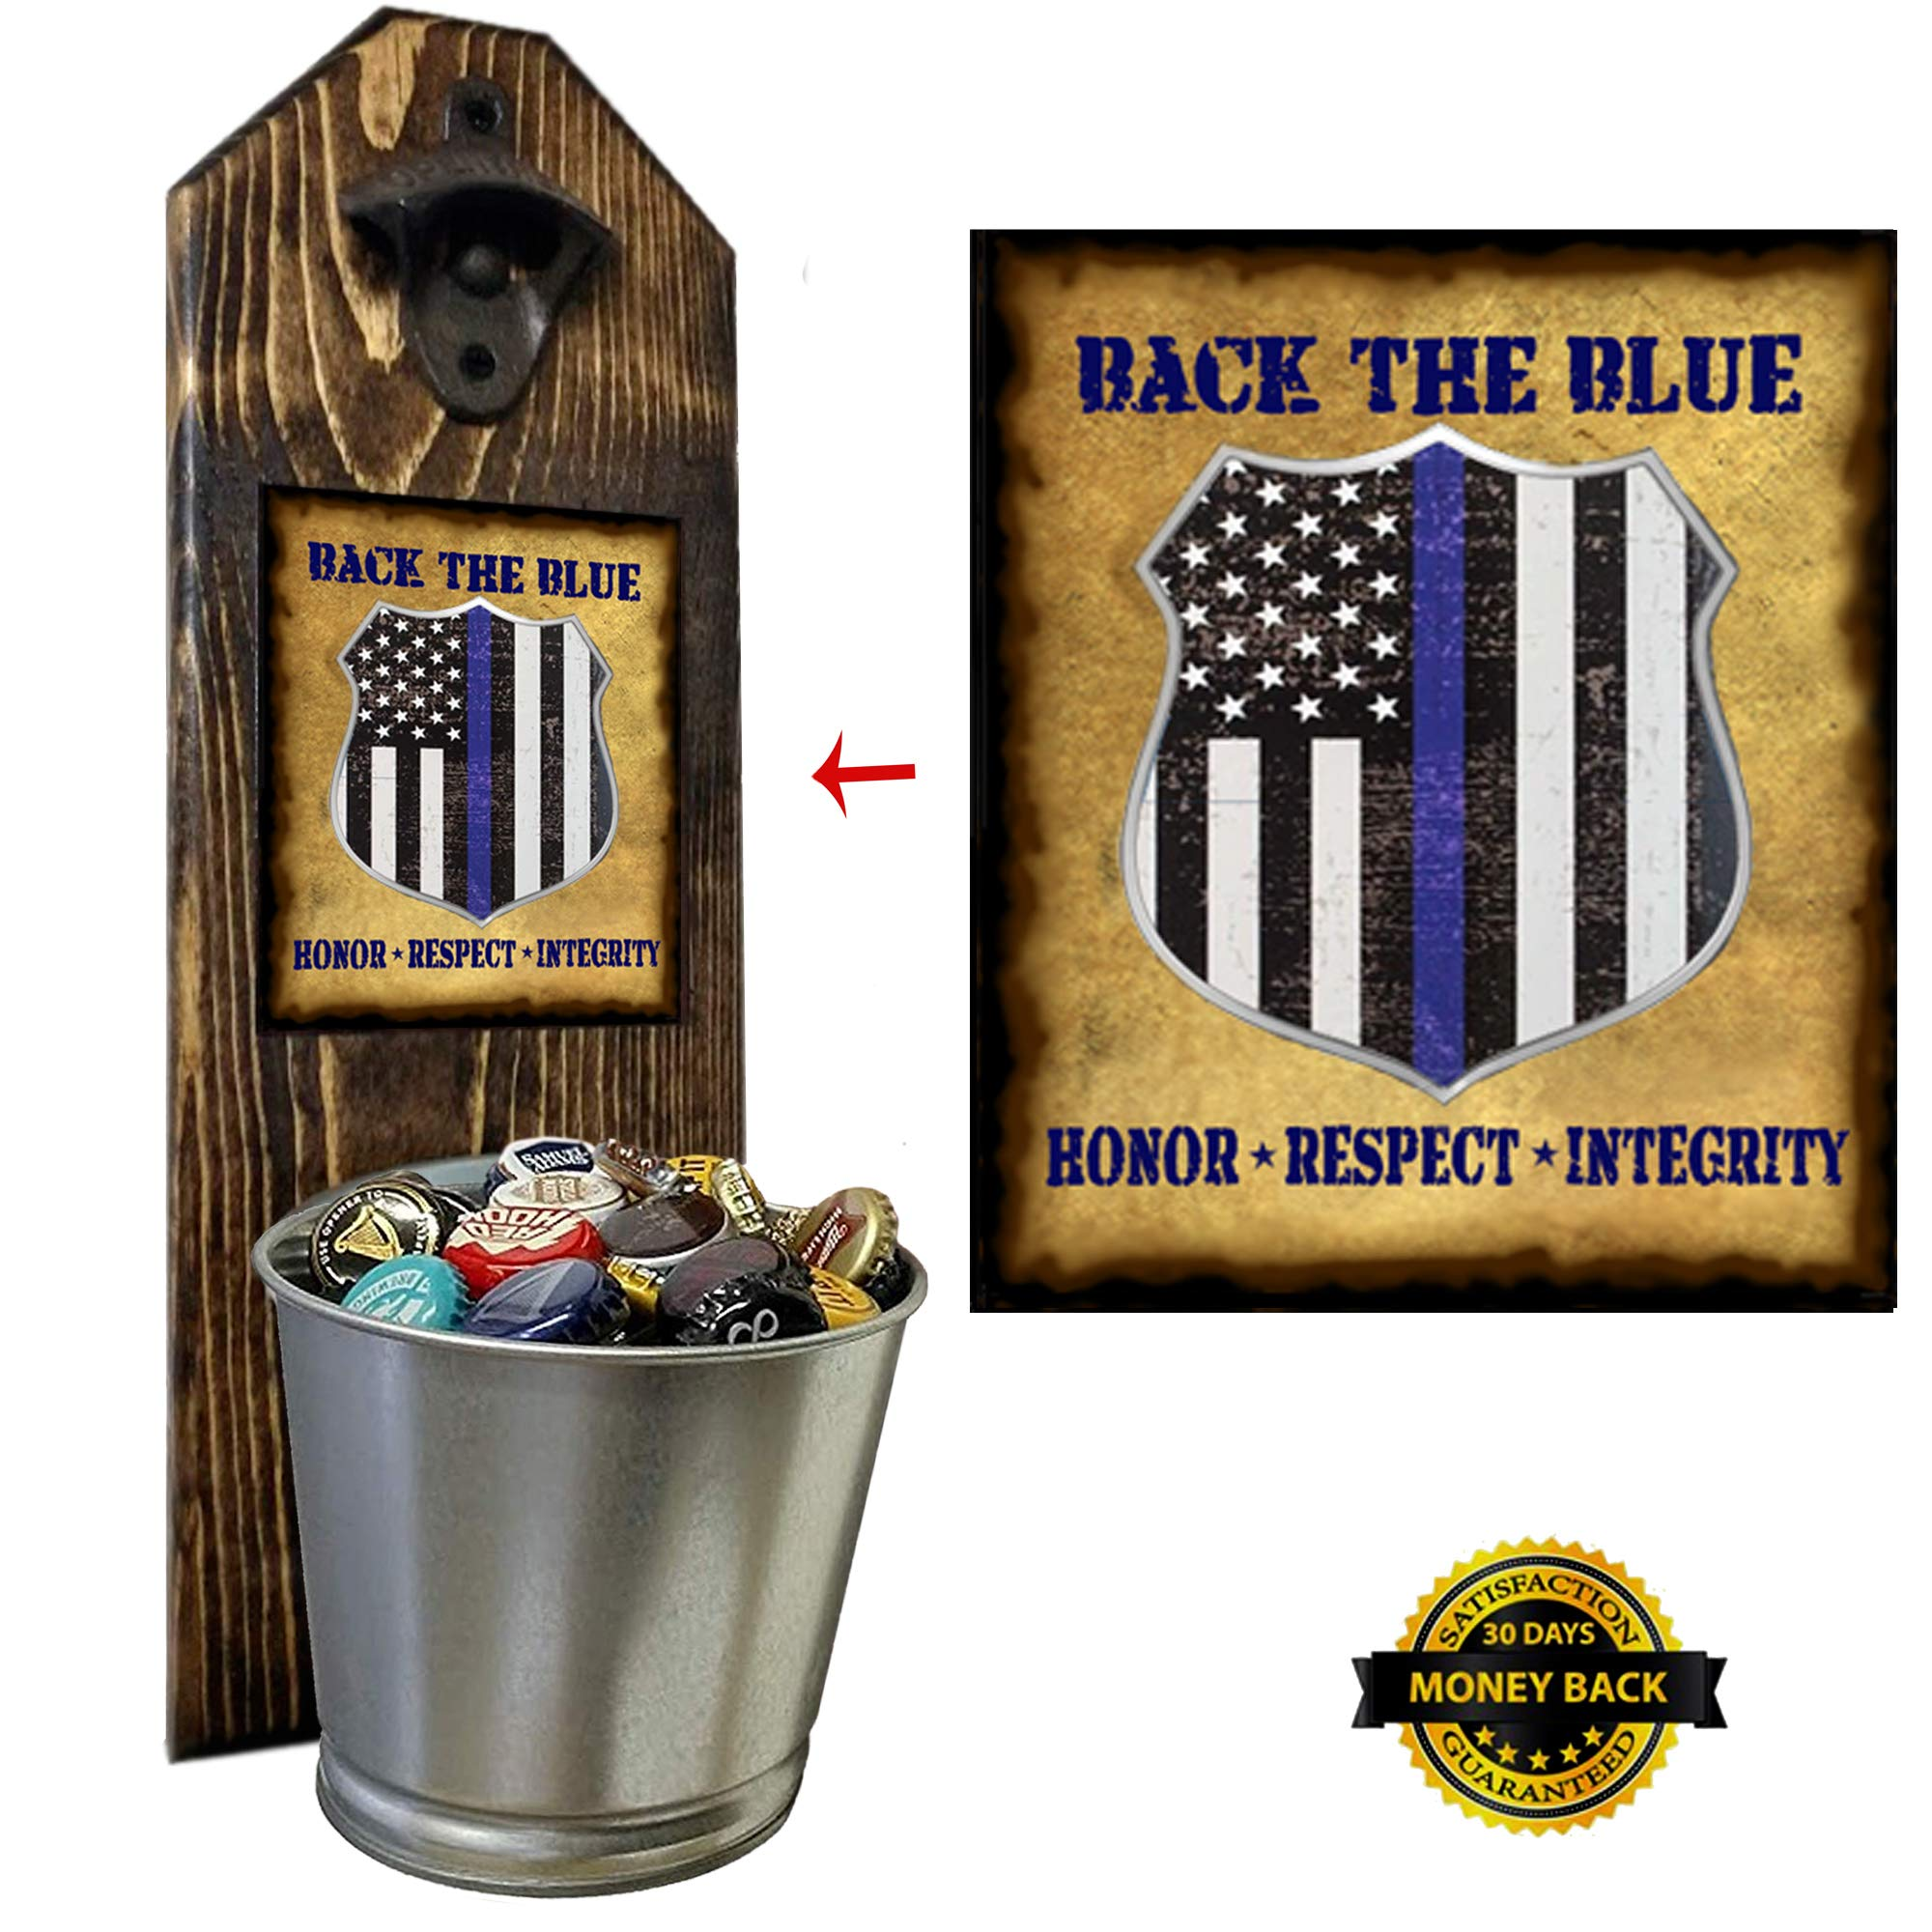 ''Back the Blue'' - Law Enforcement - Bottle Opener and Cap Catcher - Handcrafted by a Vet - 100% Solid Pine 3/4'' Thick - Cast Iron Opener and Galvanized Bucket - To Empty, Twist Bucket - Thin Blue Line by CherryPic Junction